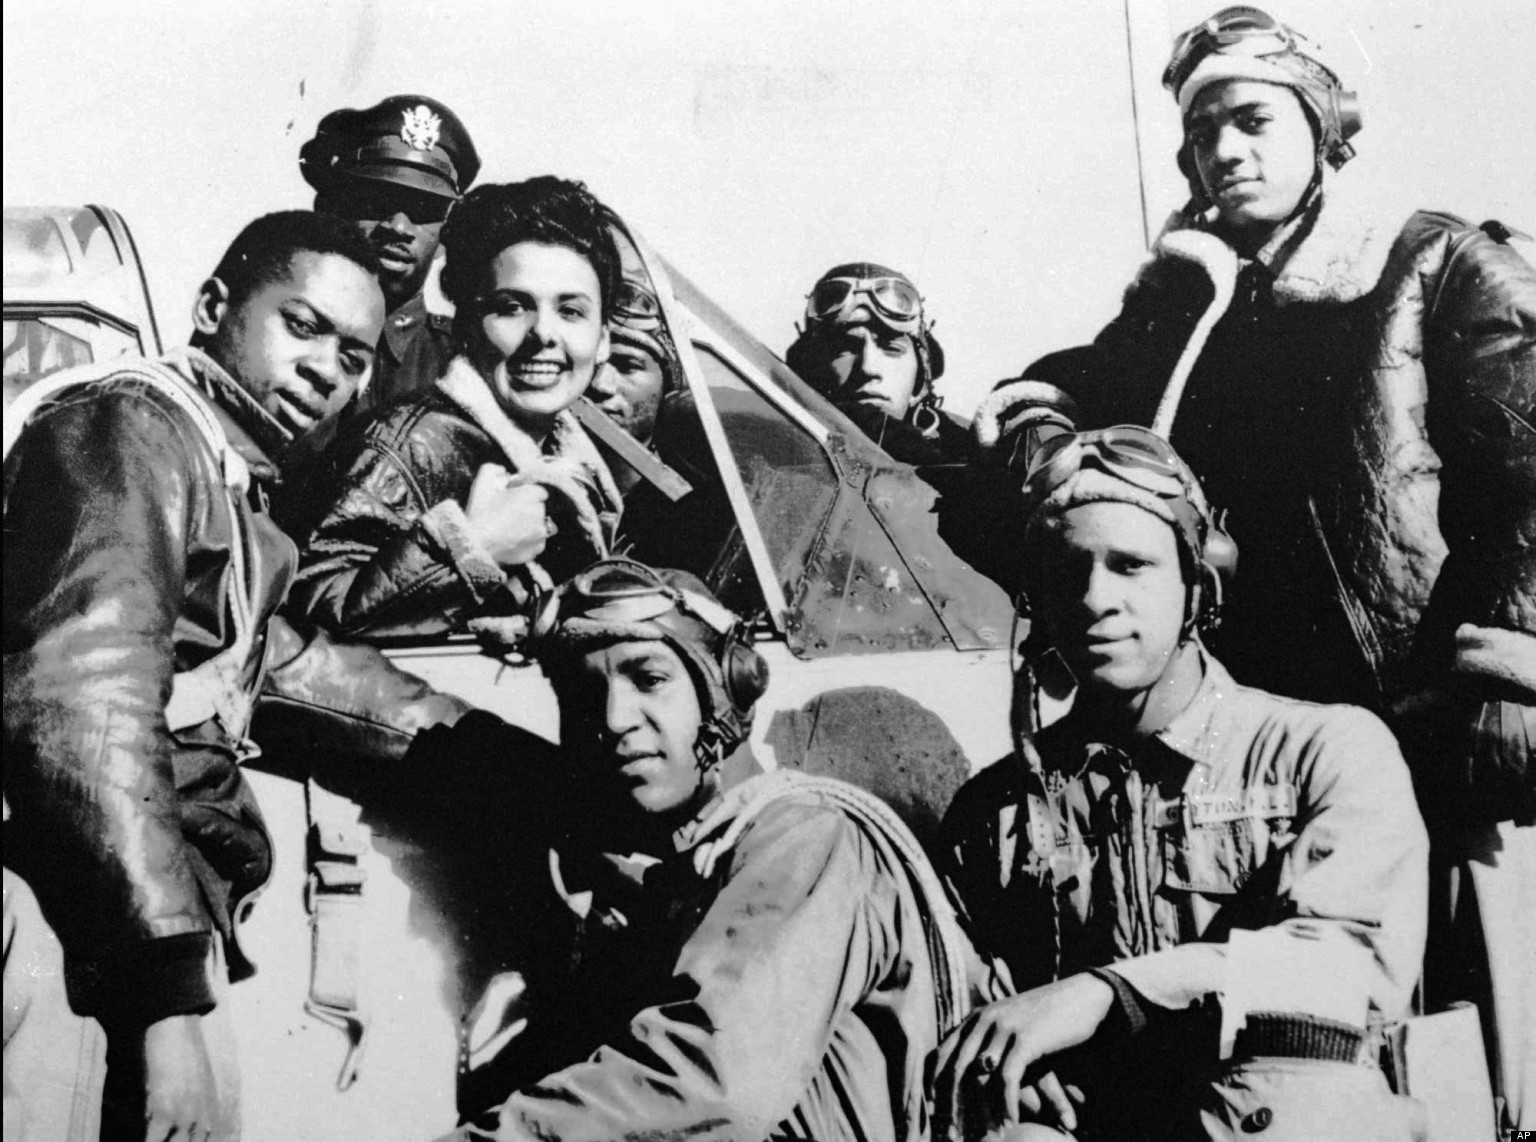 an introduction to the history of tuskegee airman Facts & information about the tuskegee airmen, a group of african-american pilots in wwii in black history tuskegee airmen facts years of service 1940–1952 branch united states army air corps united states army air forces united states air force fighting groups 332nd fighter group 100th pursuit squadron 301st pursuit squadron.